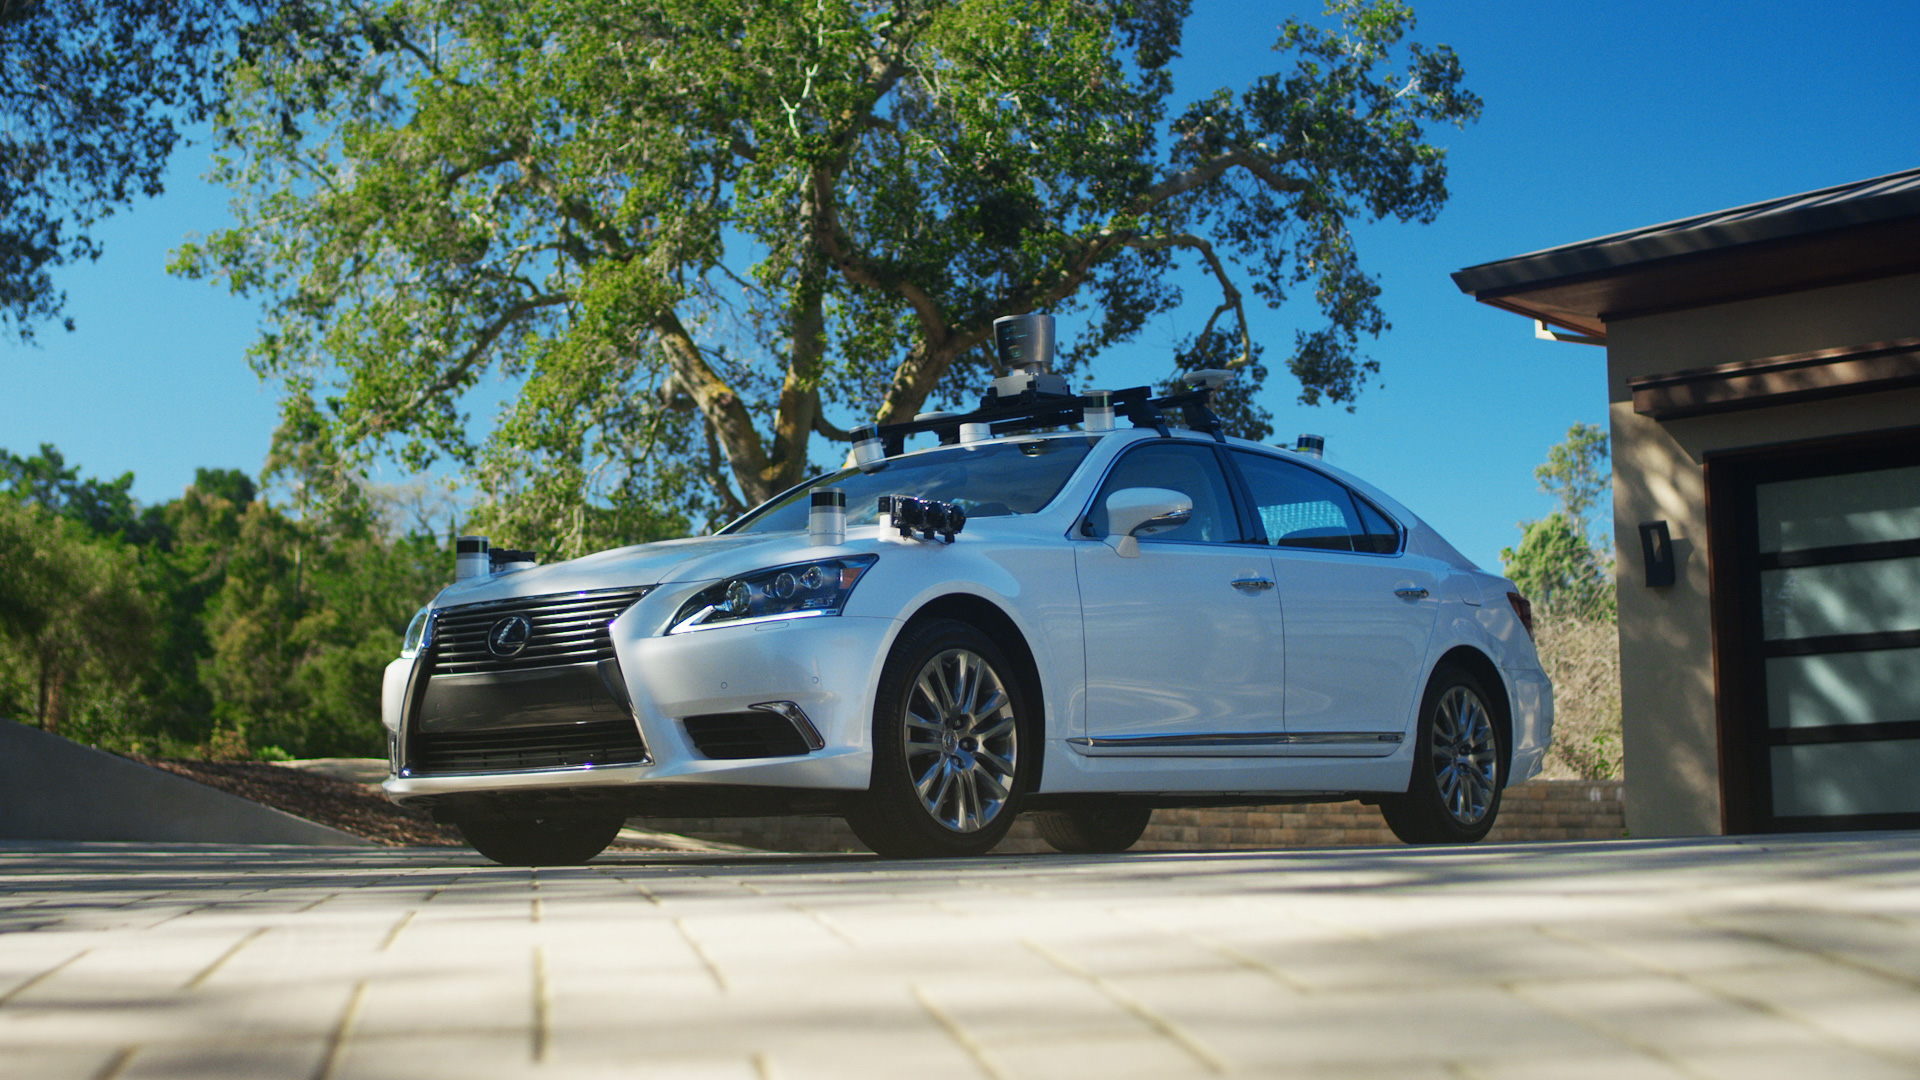 Toyota Self-driving Research Vehicle 2.0